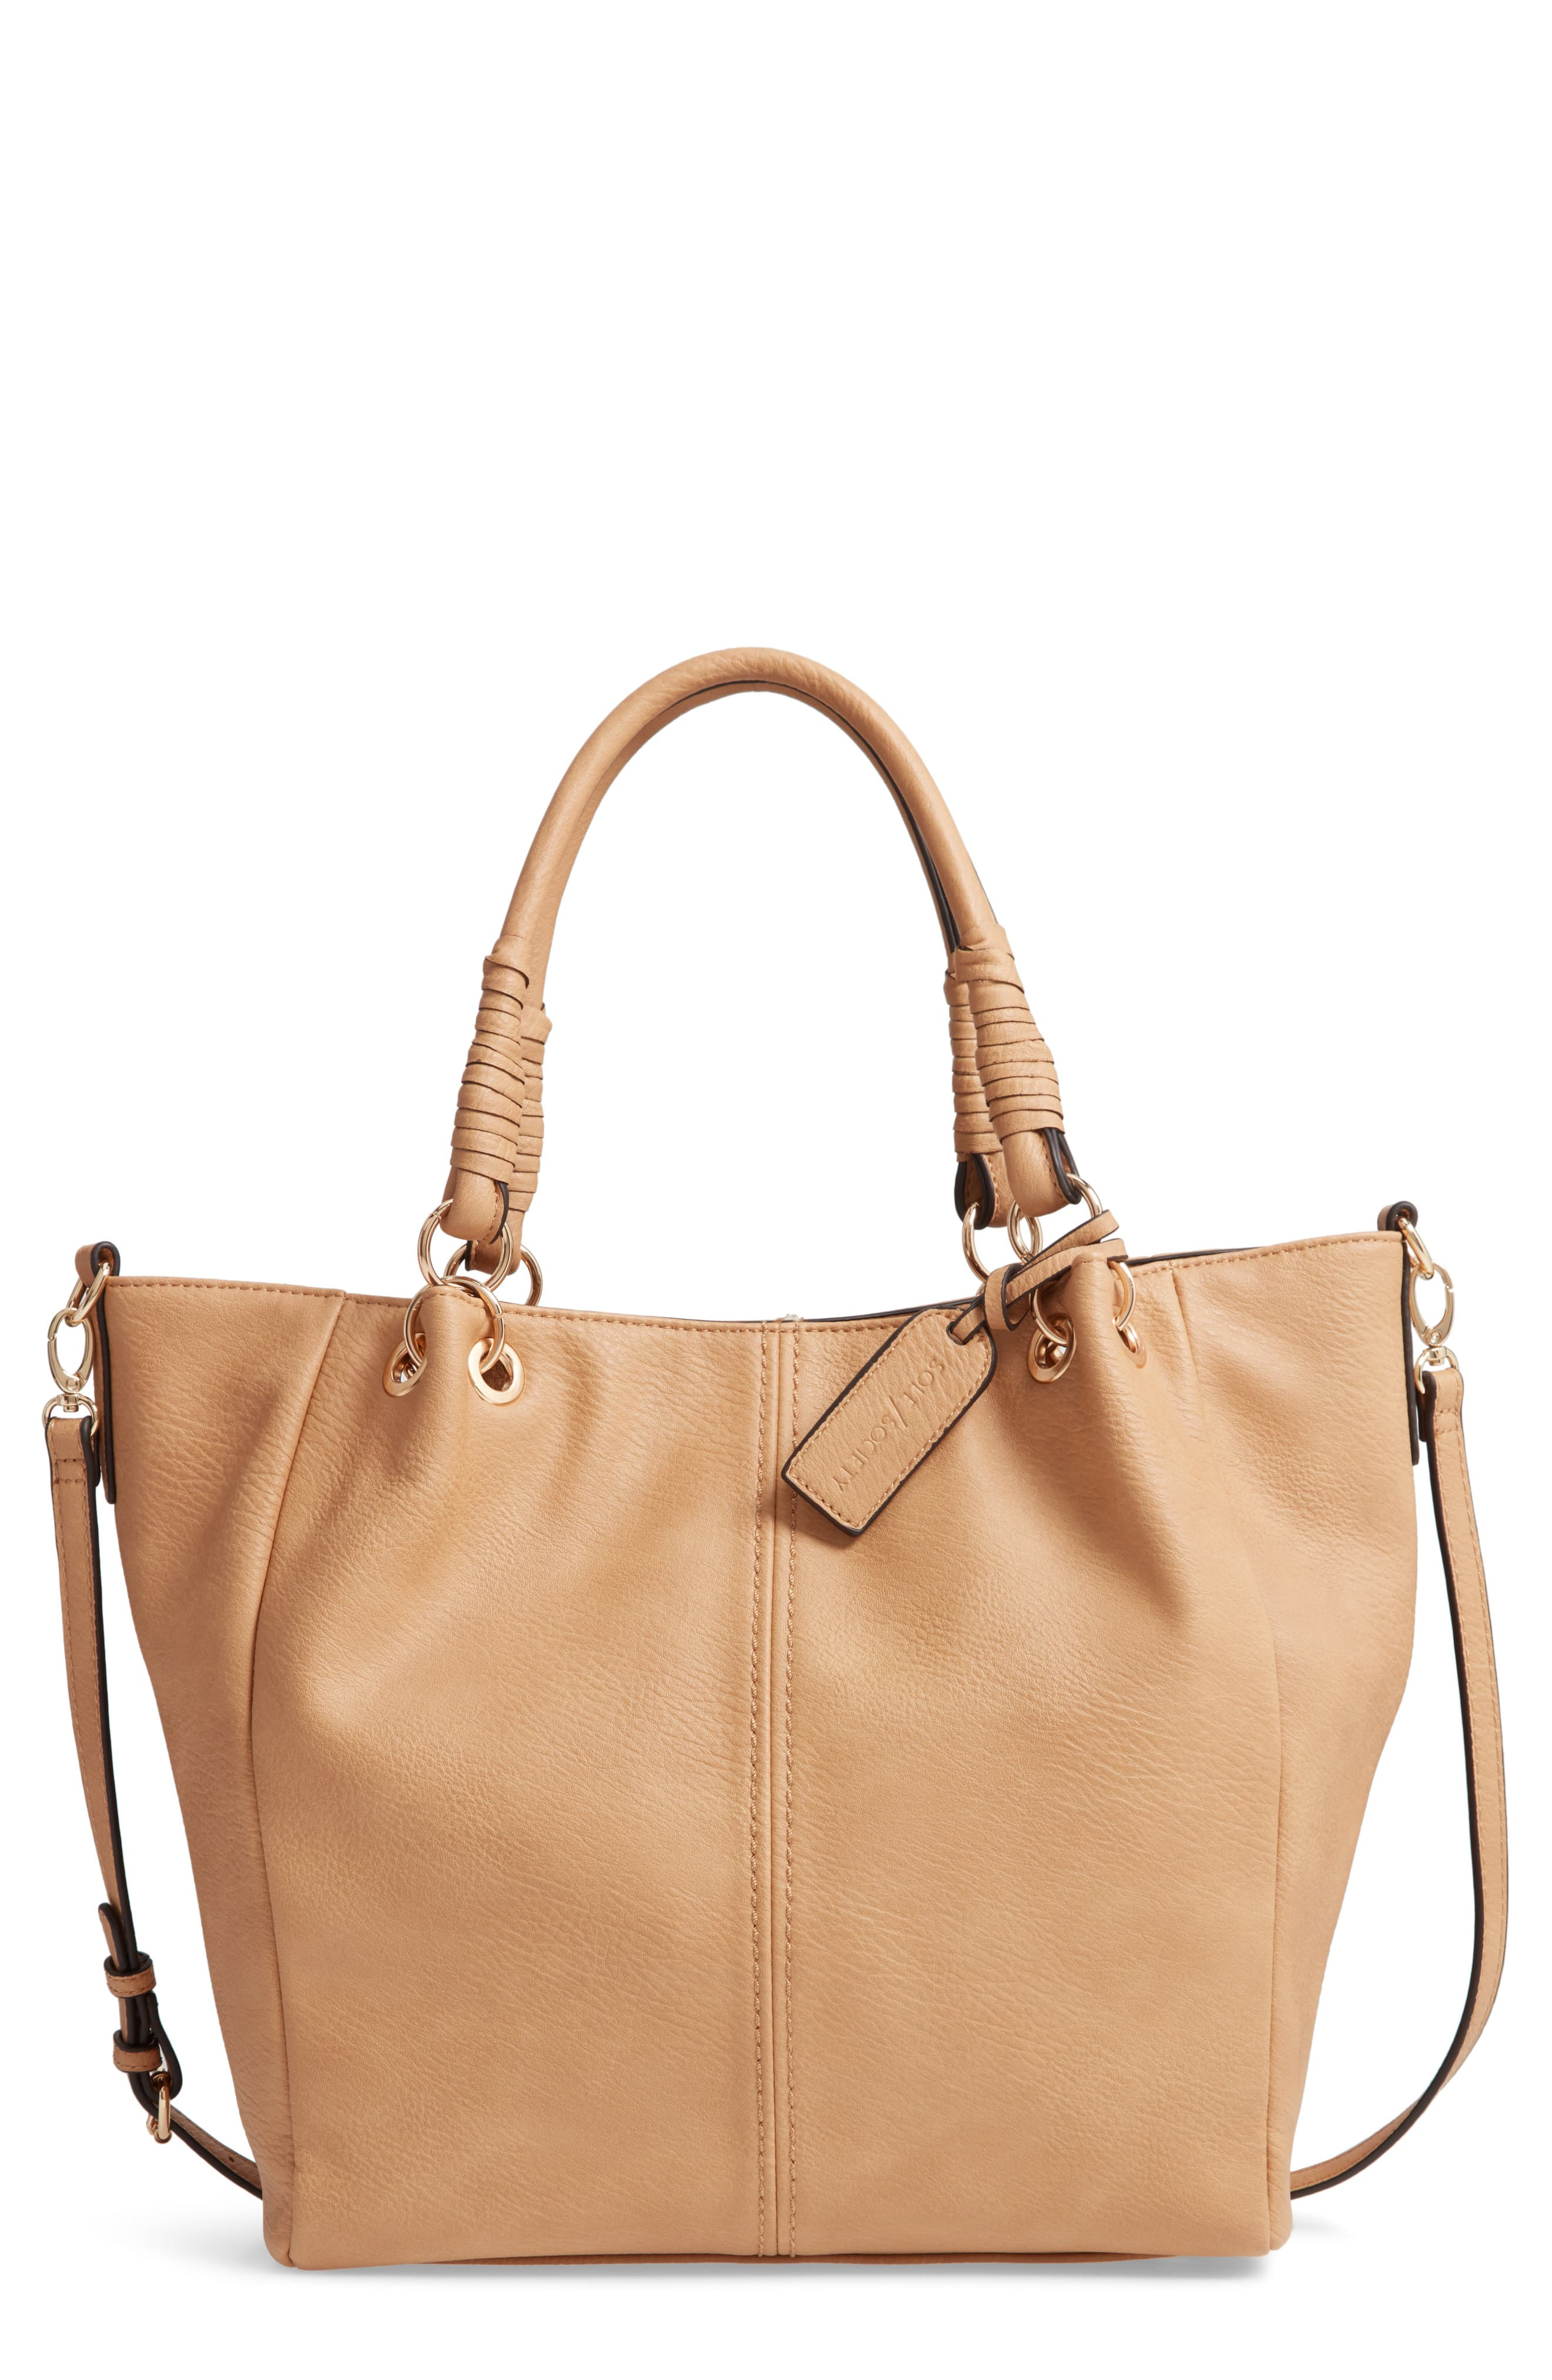 01e08474d9 Sole Society Rubie Faux Leather Tote in 2019 | Products | Leather, Sole